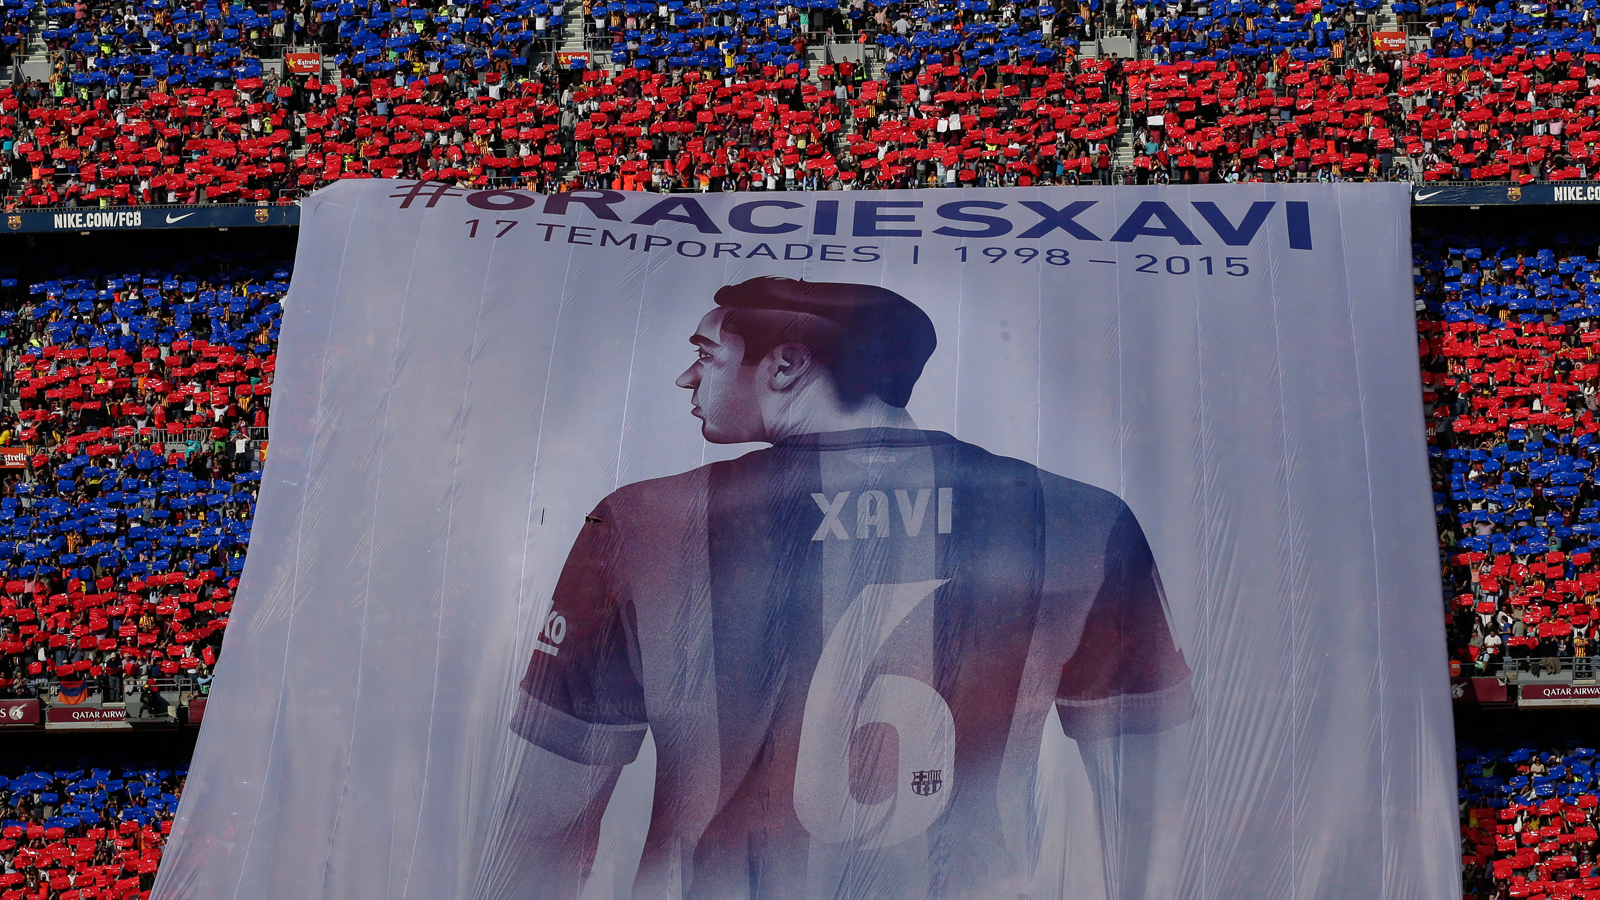 Barcelona fans bid farewell to veteran midfielder Xavi in his last league game at Camp Nou before departing for Qatari club Al Sadd.